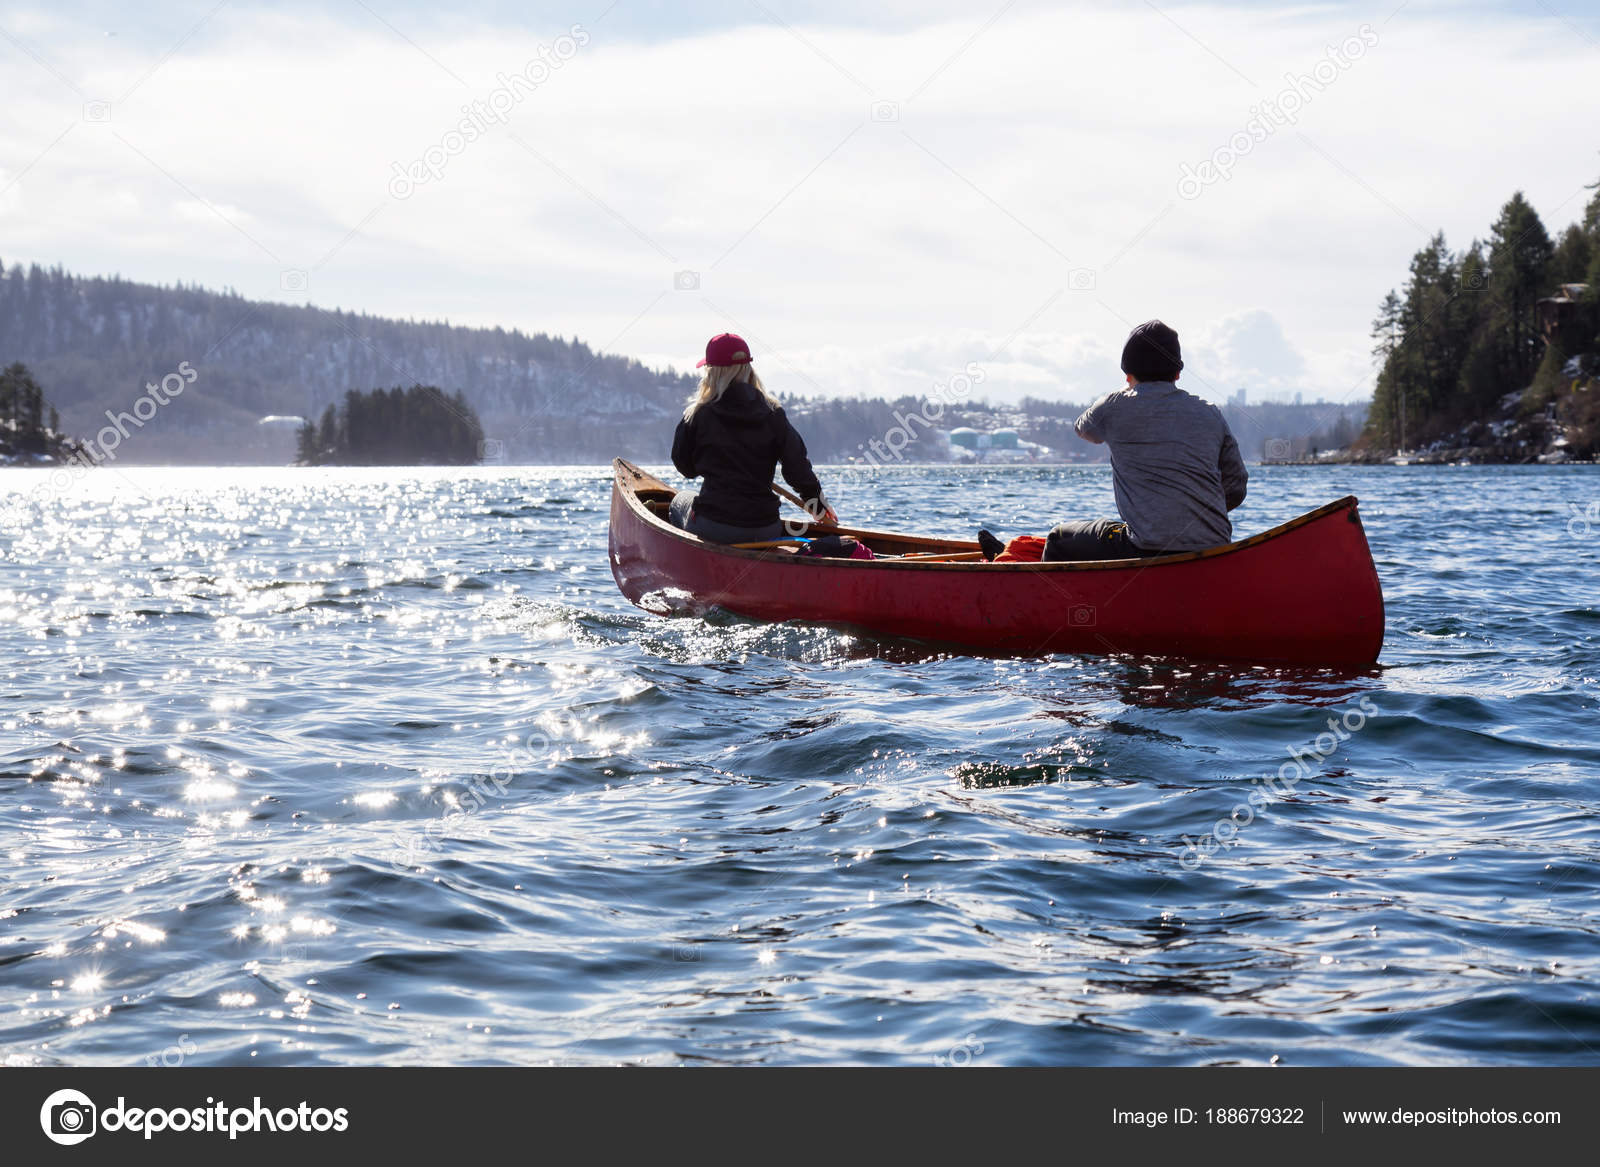 Couple Friends On A Wooden Canoe Are Paddling In An Inlet Surrounded By Canadian Mountains Taken Indian Arm Near Deep Cove North Vancouver